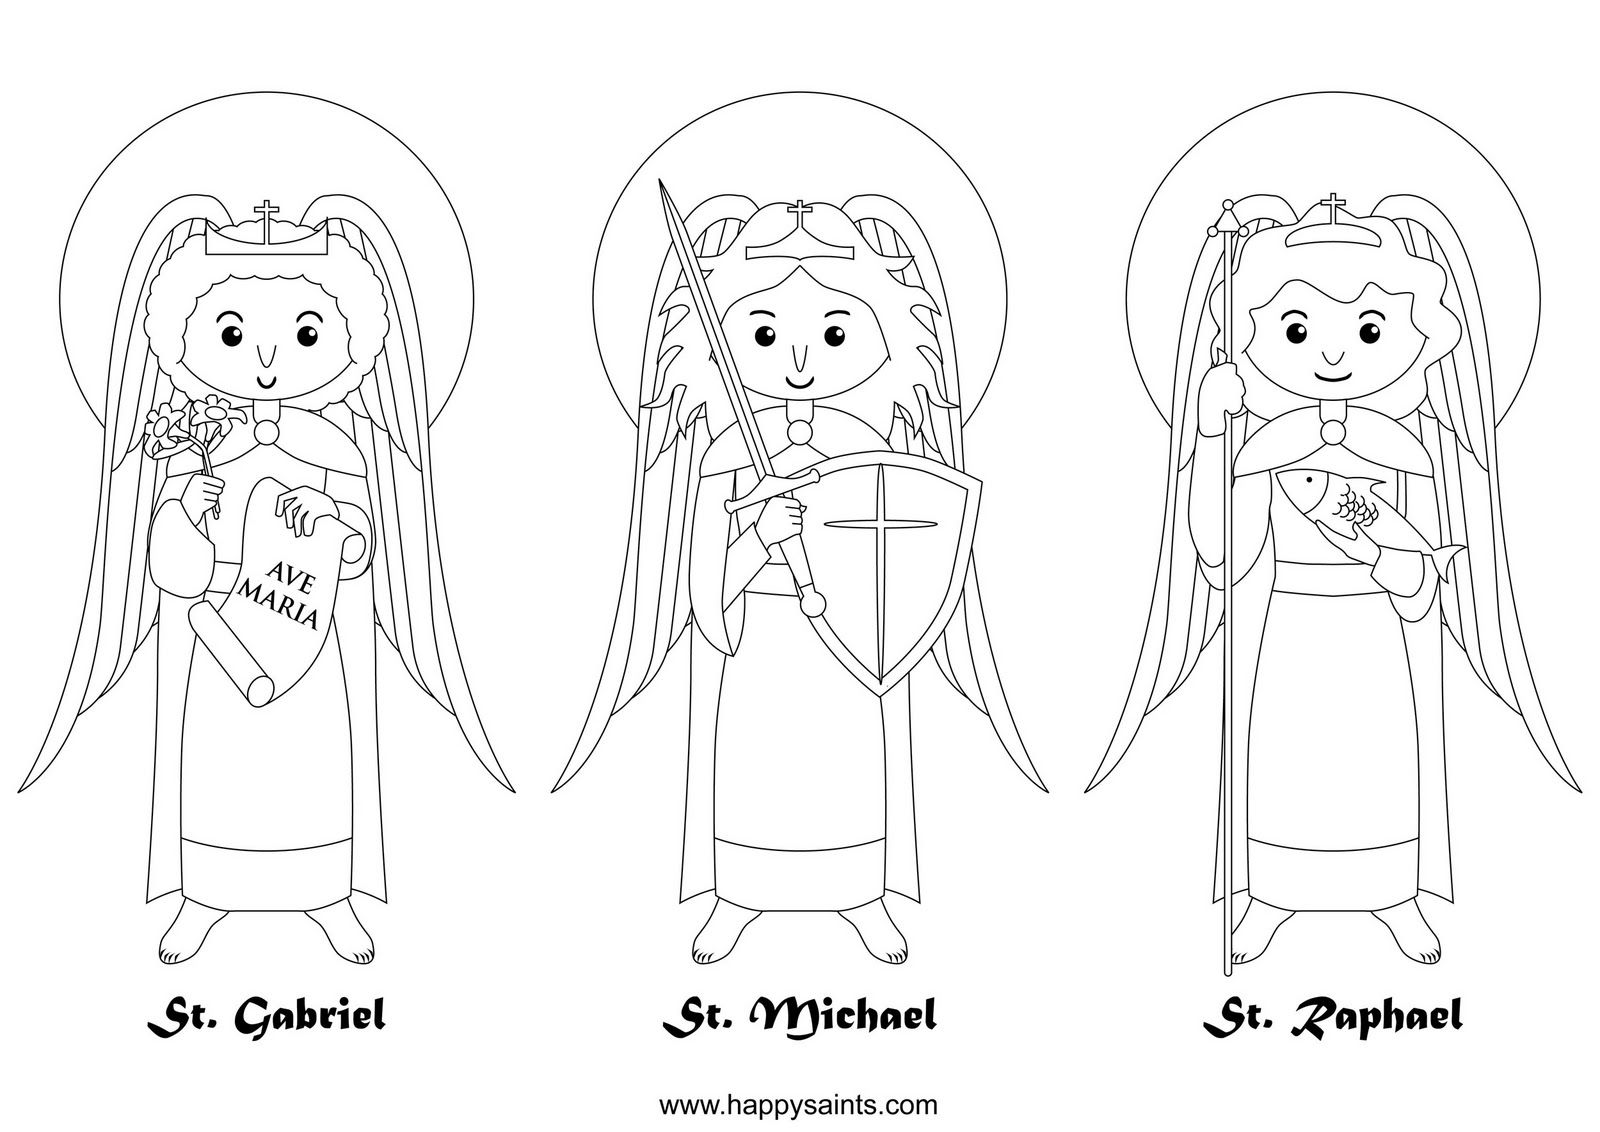 Happy Saints Archangels Catholic Coloring Page Feast Day Of The Archangels St Michael St